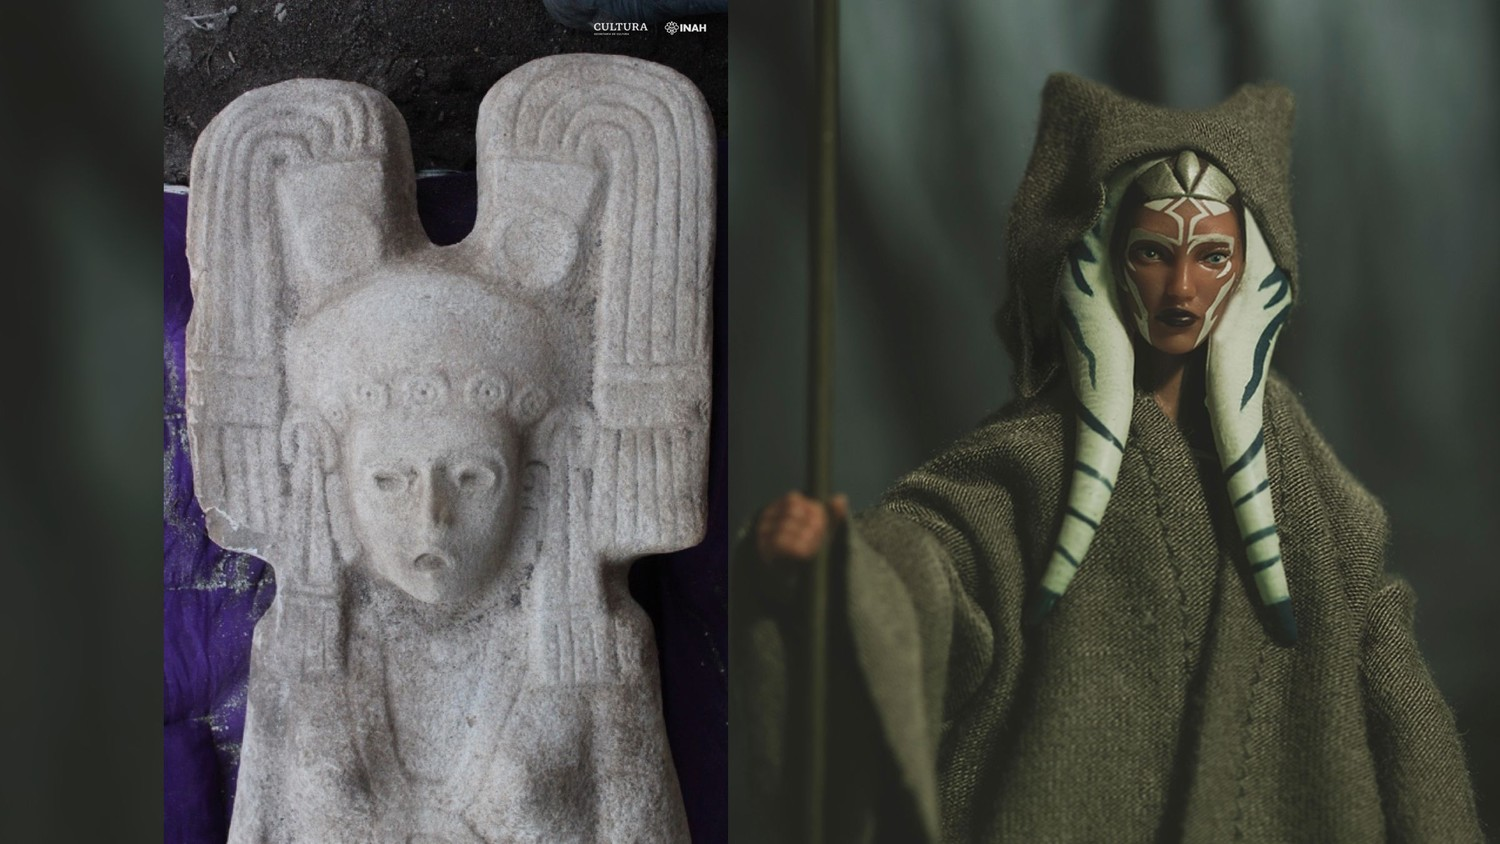 Ancient statue similar to Star Wars character discovered in Mexico